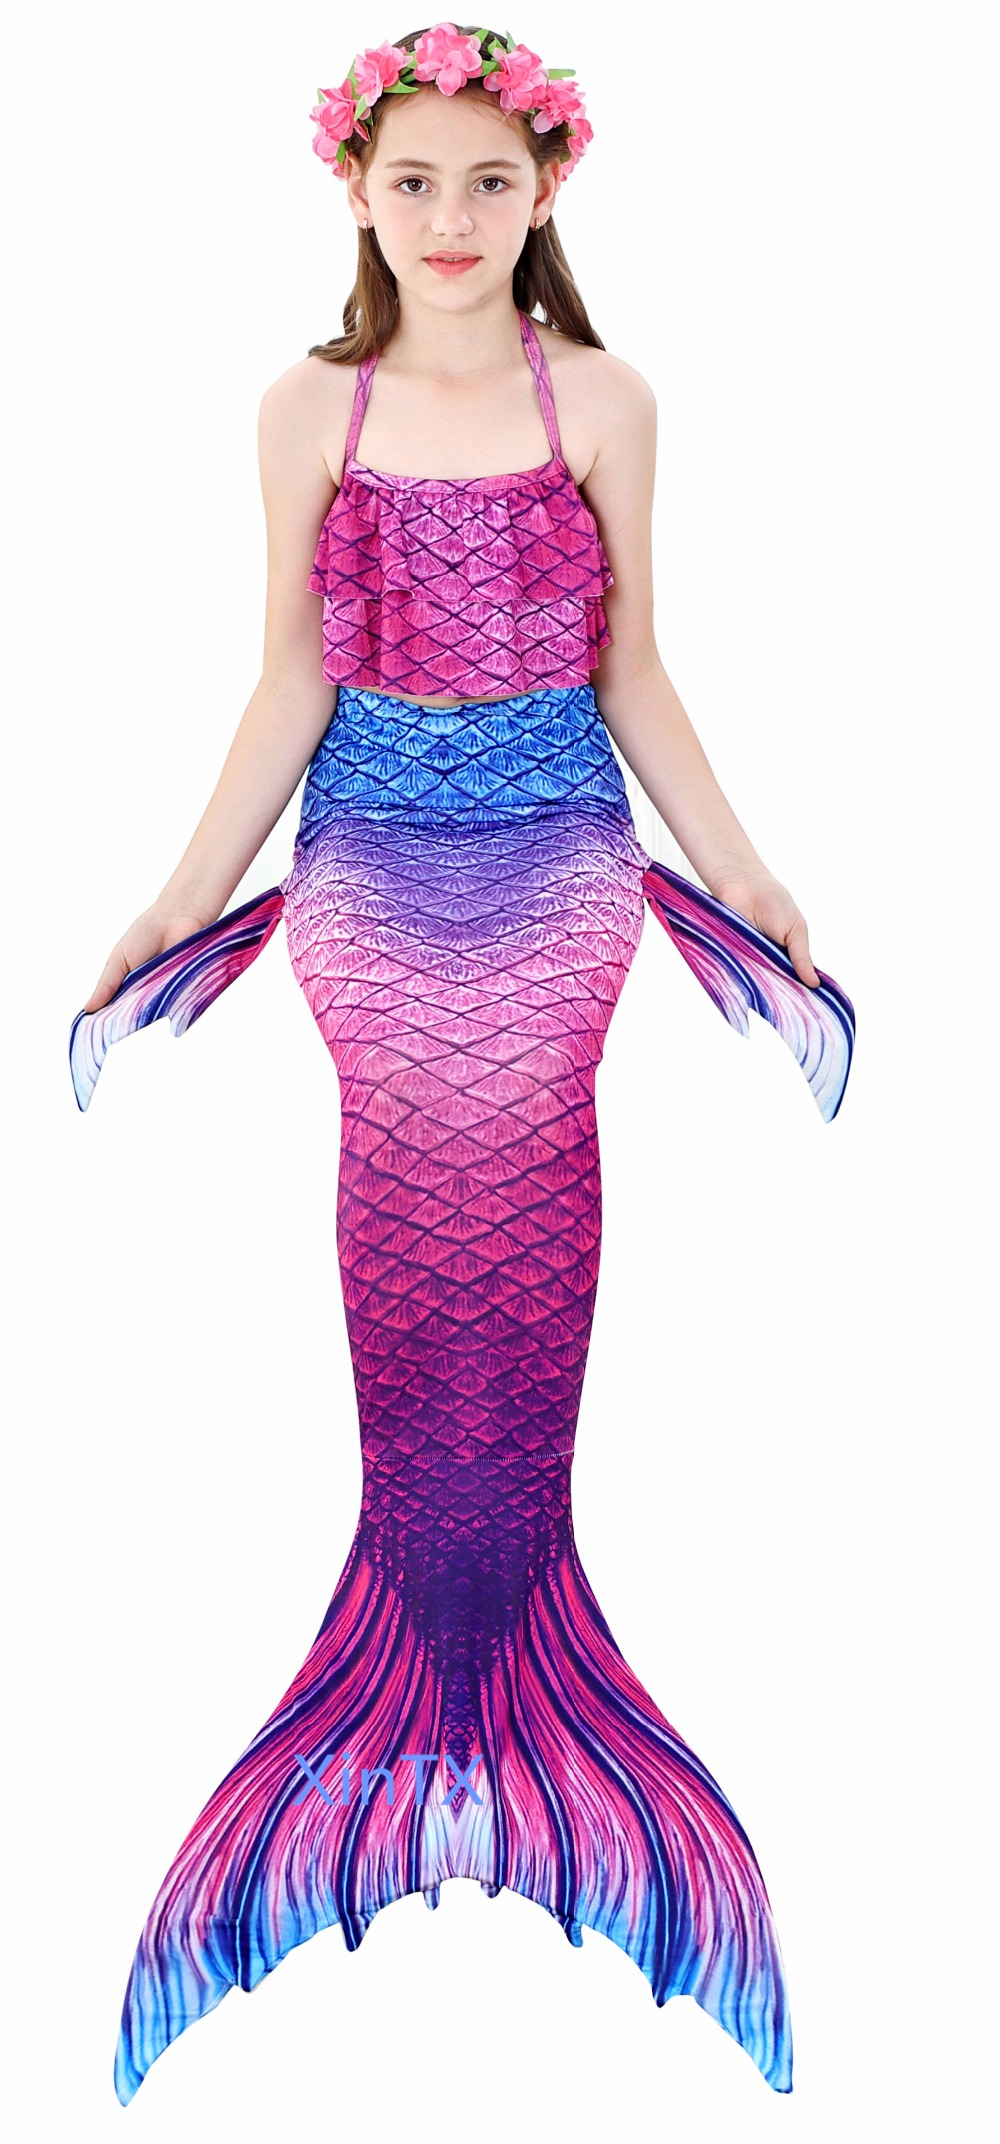 H9b665c3cab074b28aaa874ad71c65a7fC - 4PCS/Set HOT Kids Girls Mermaid Tails with Fin Swimsuit Bikini Bathing Suit Dress for Girls With Flipper Monofin For Swim